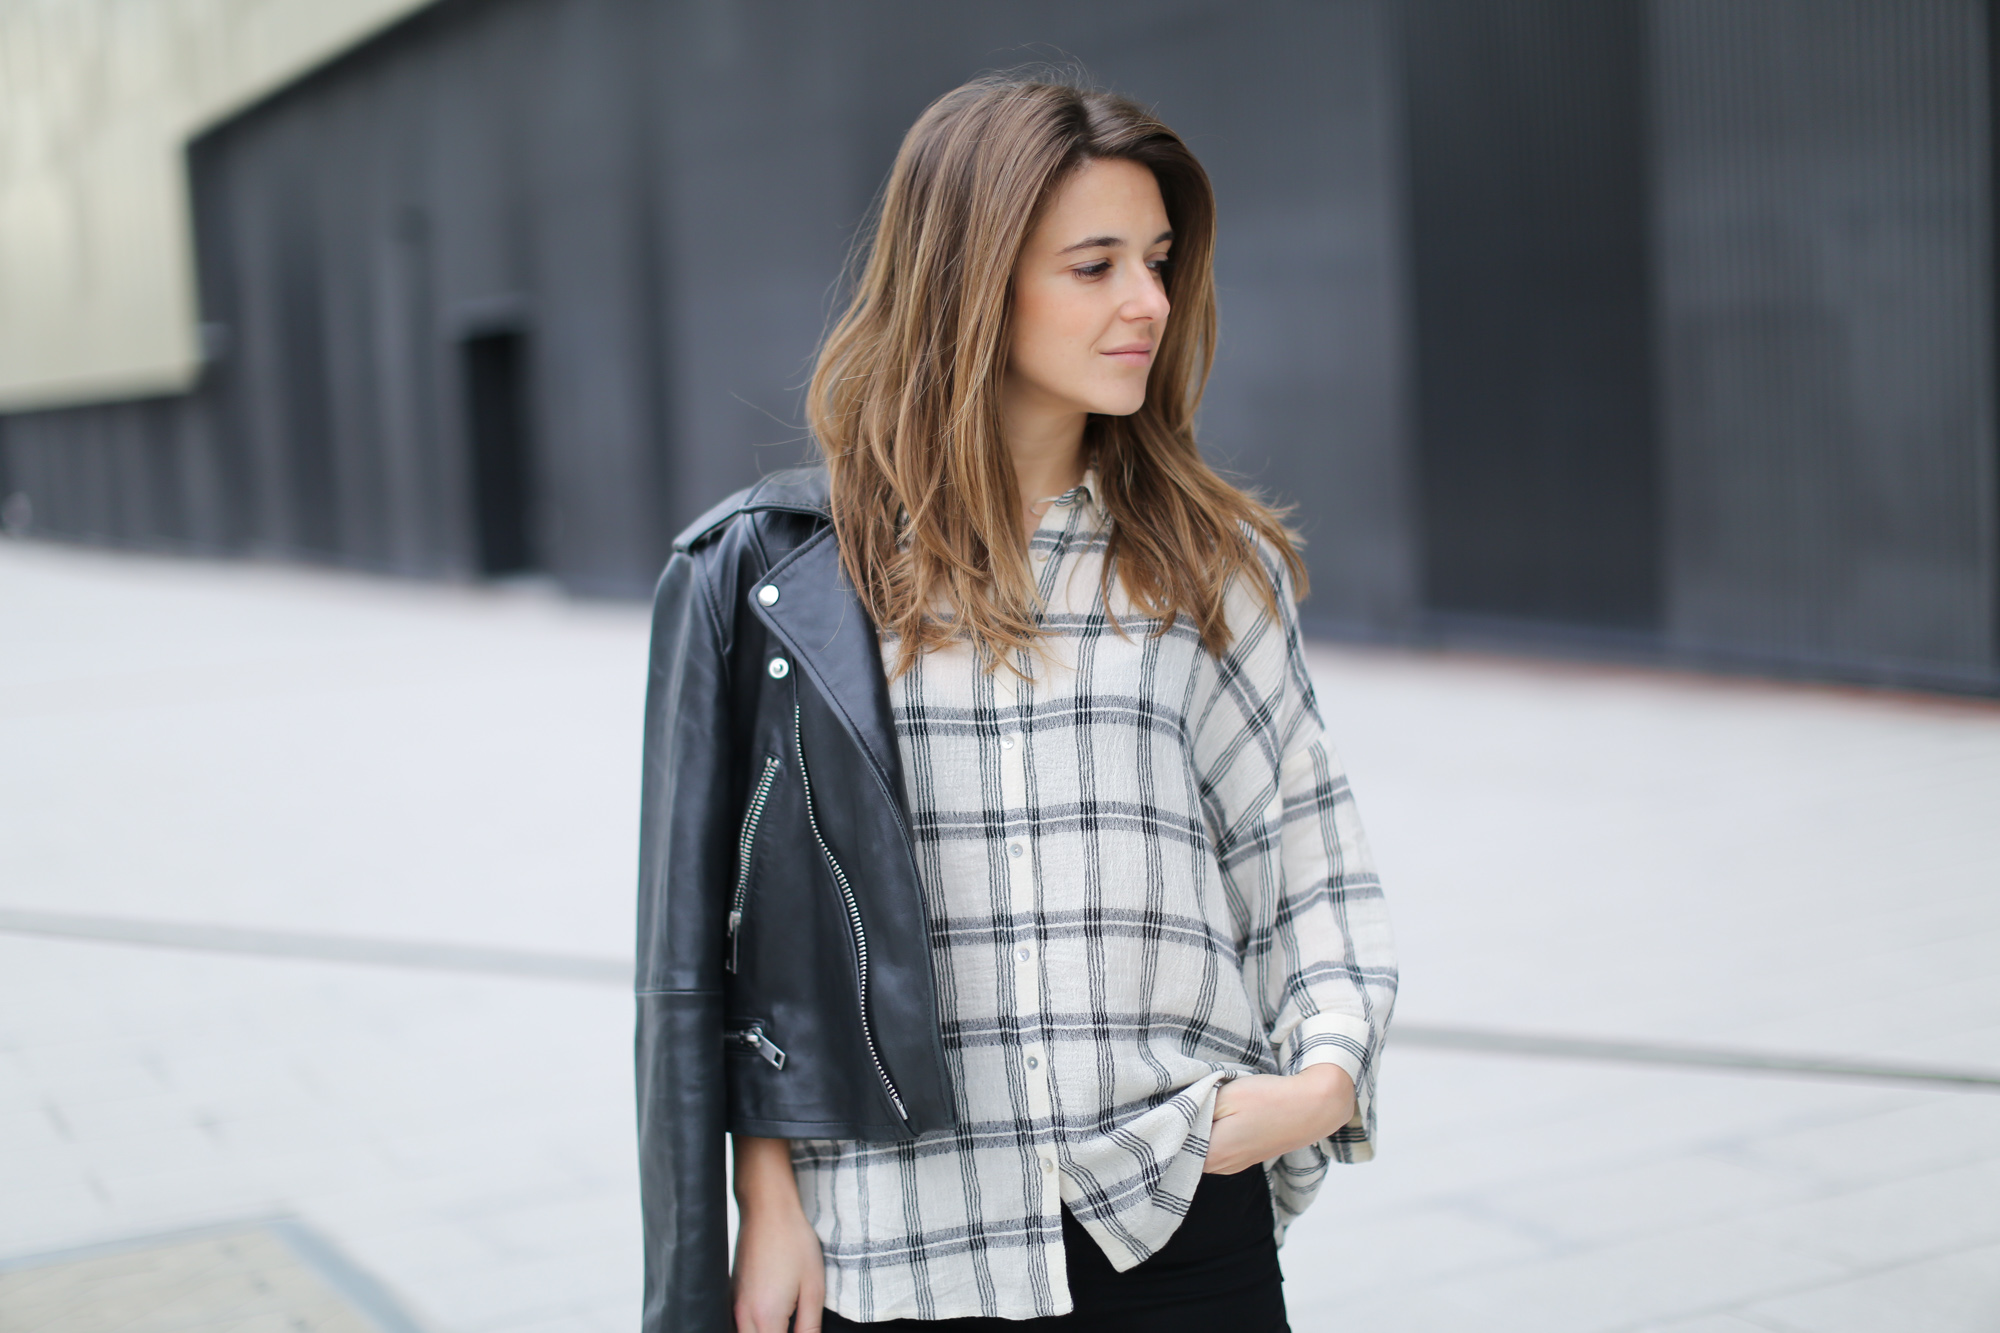 Clochet-streetstyle-mango-leather-biker-jacket-pointy-flats-2